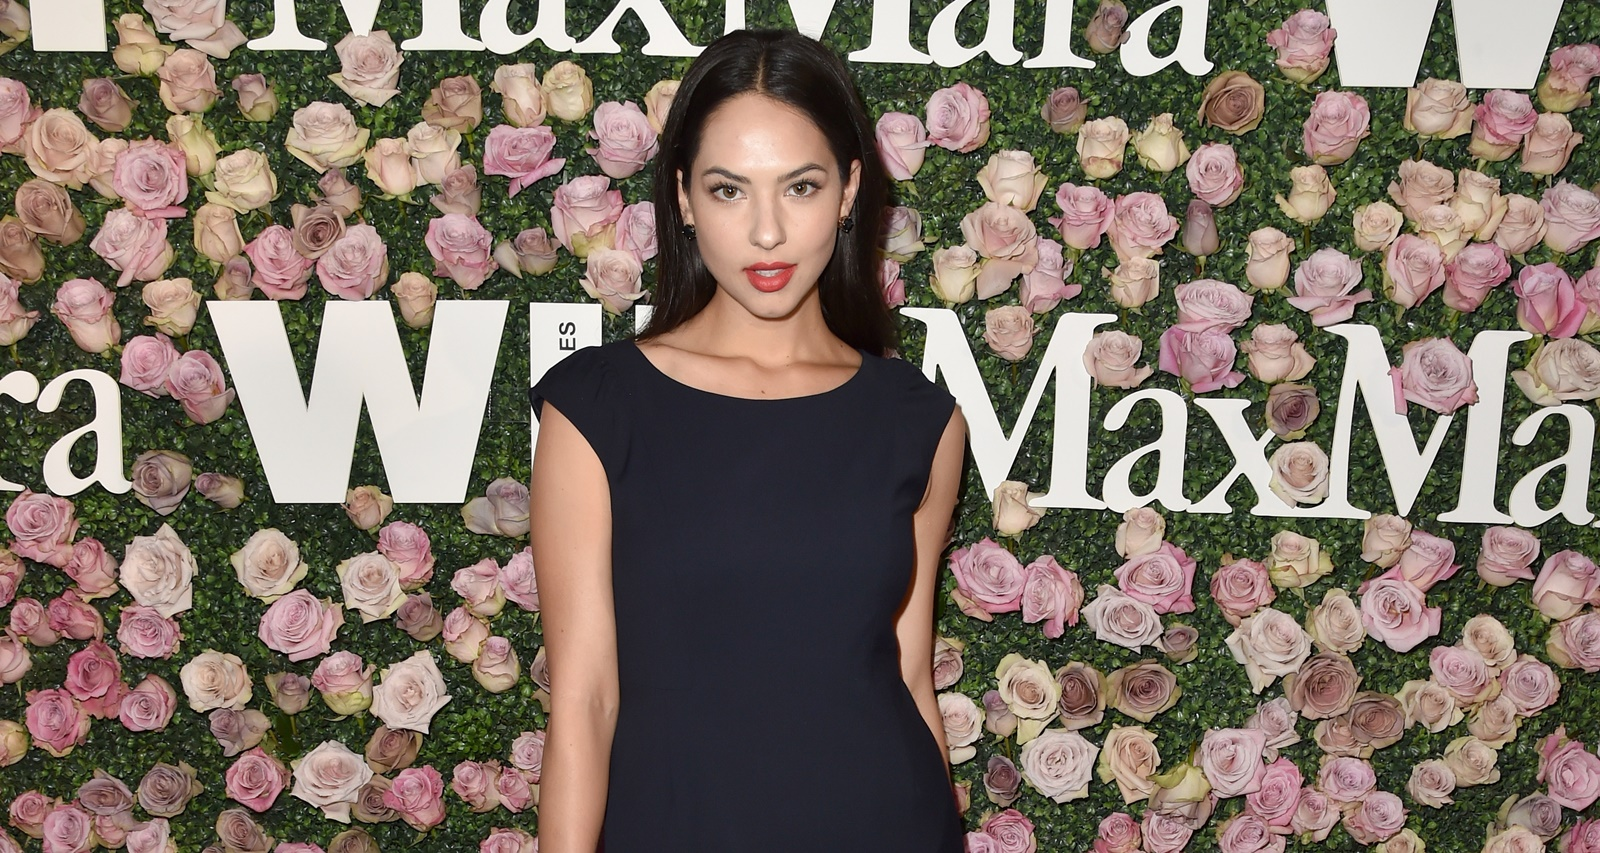 Christen Harper Wiki, Age, Family & Facts About Jared Goff's Model Girlfriend